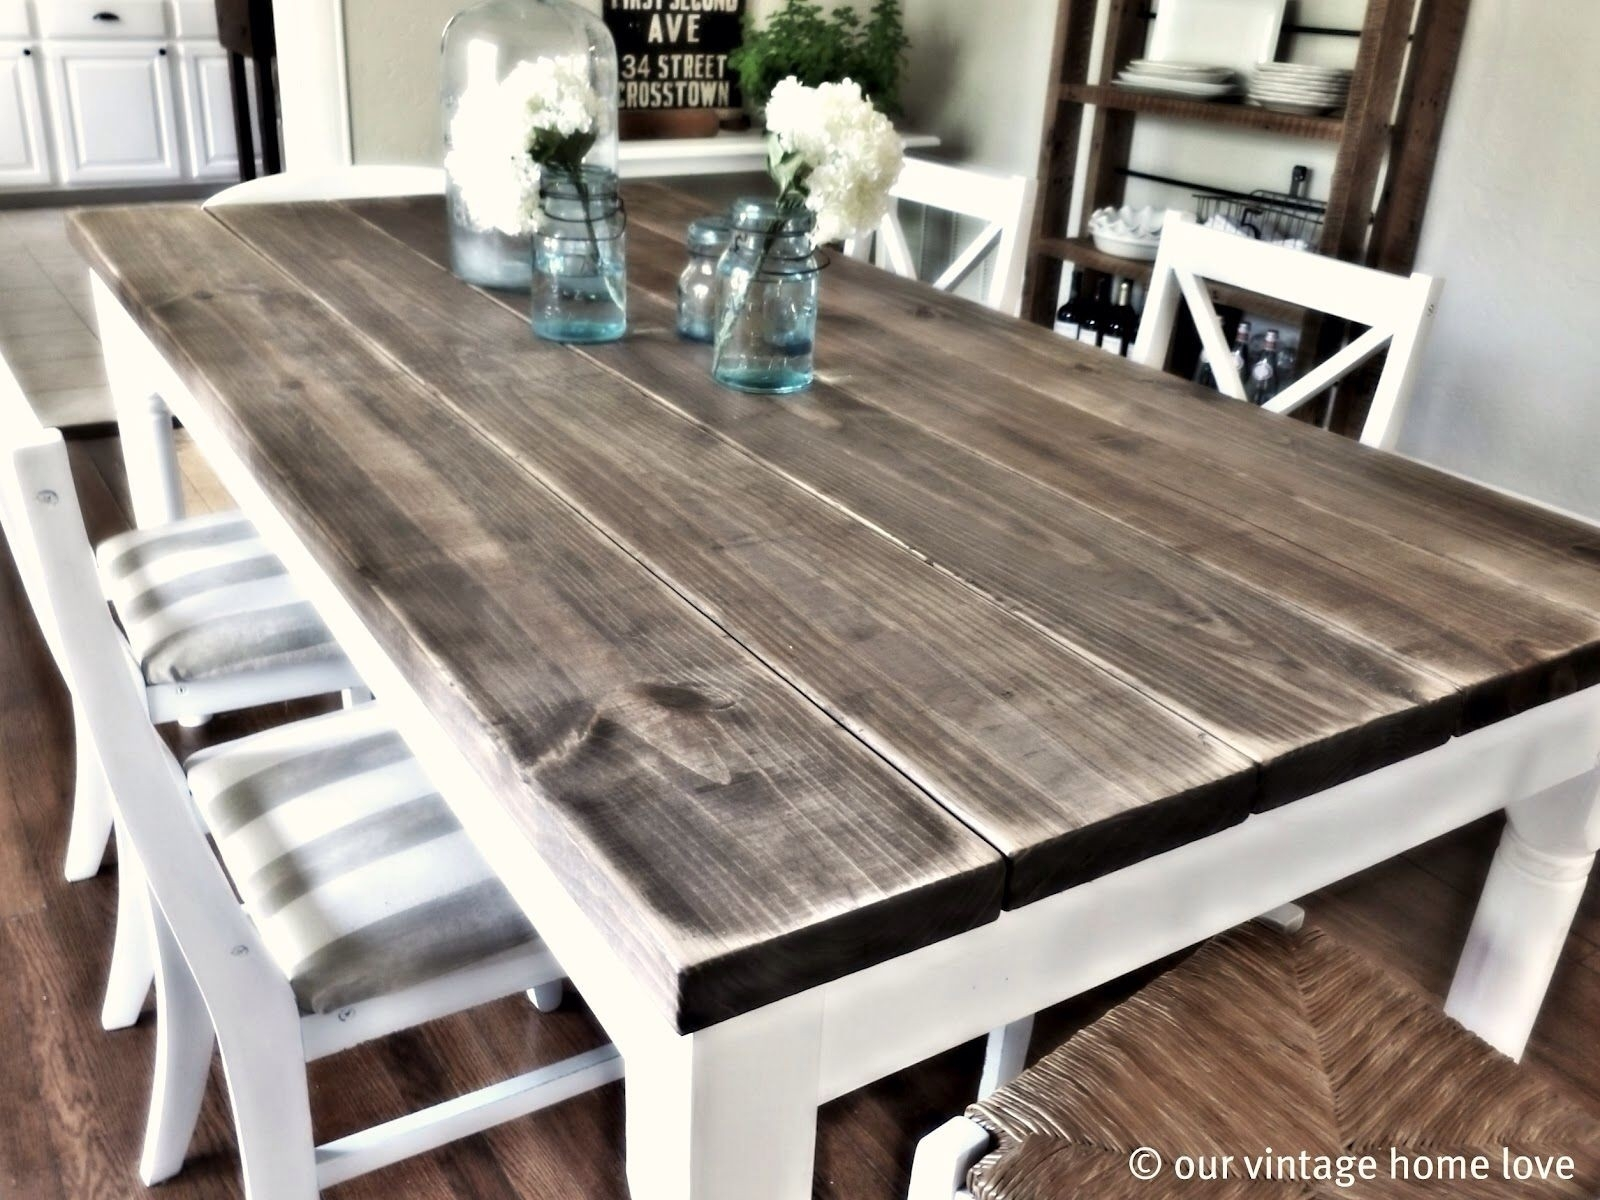 Long Wooden Dining Table Inspirational Impressive Farm Dining Tables Intended For 2018 Farm Dining Tables (Image 13 of 20)